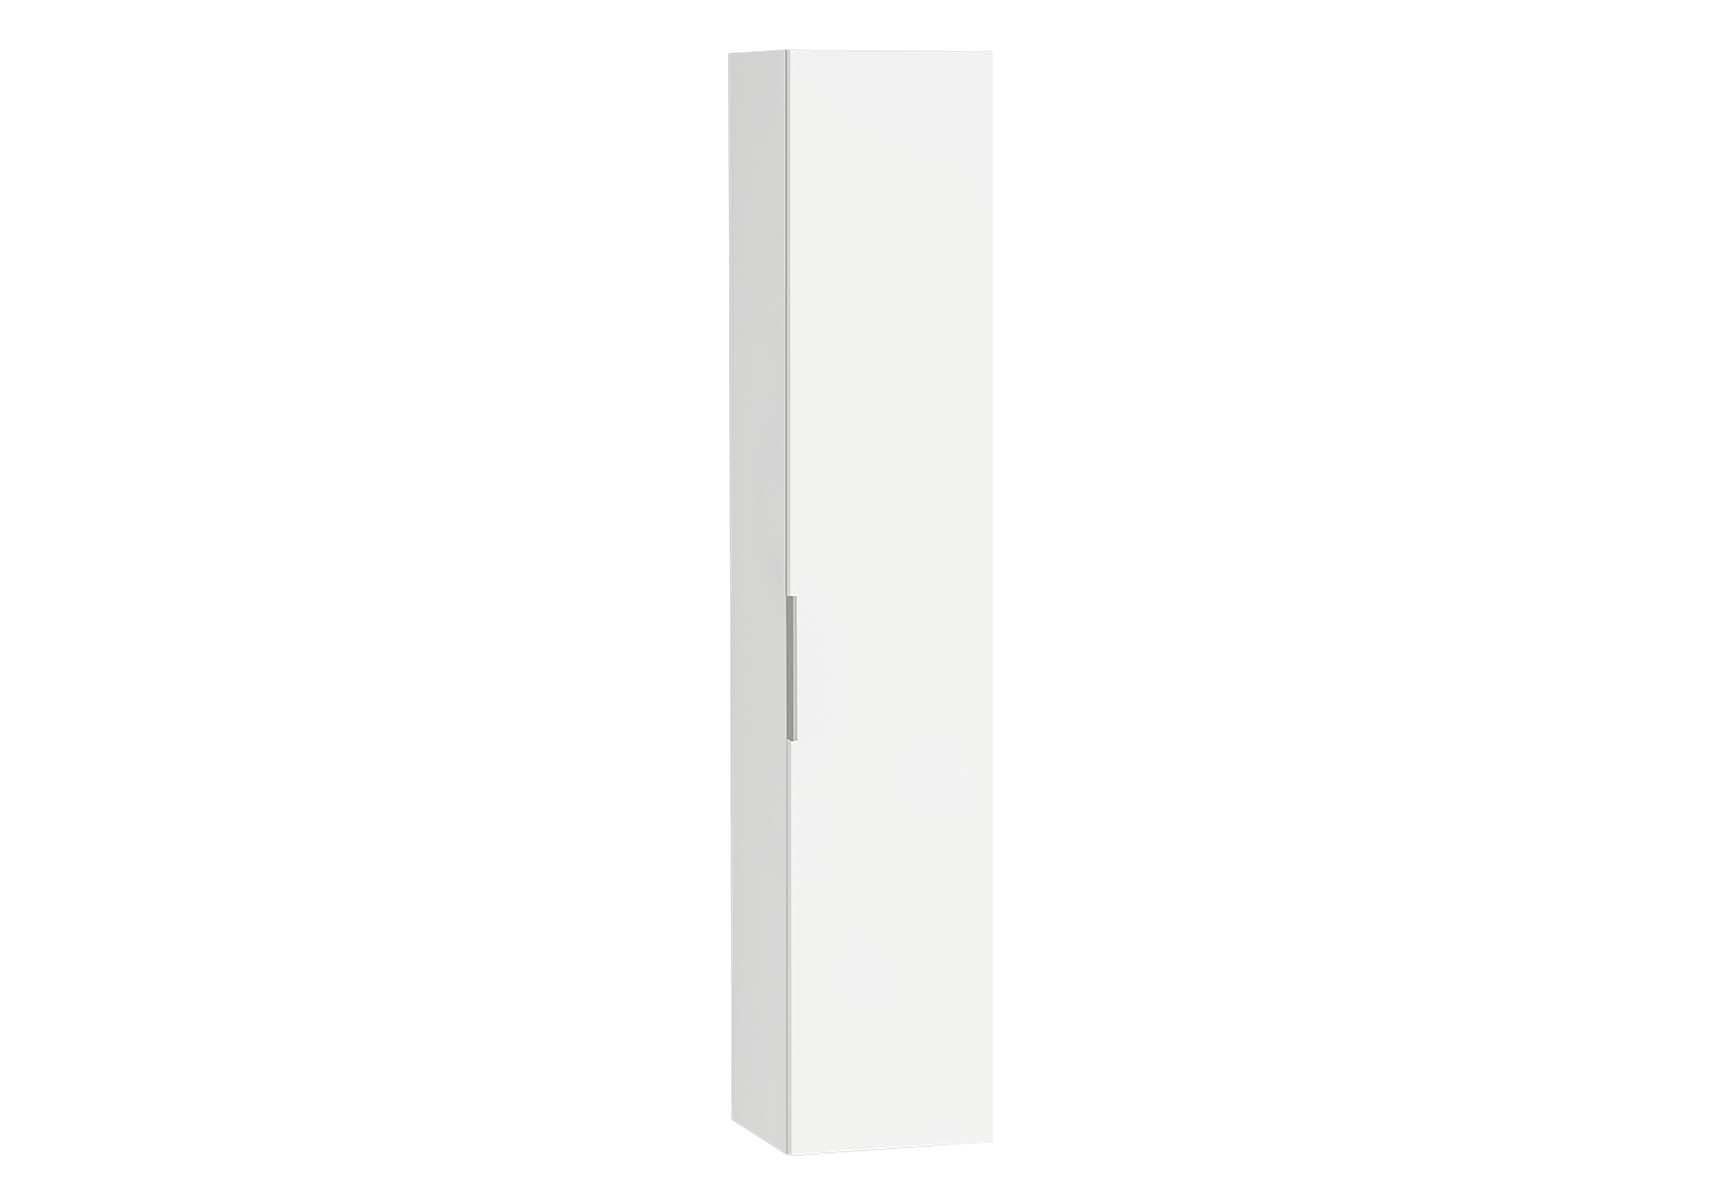 Central Tall Unit, 35 cm, White High Gloss, Right